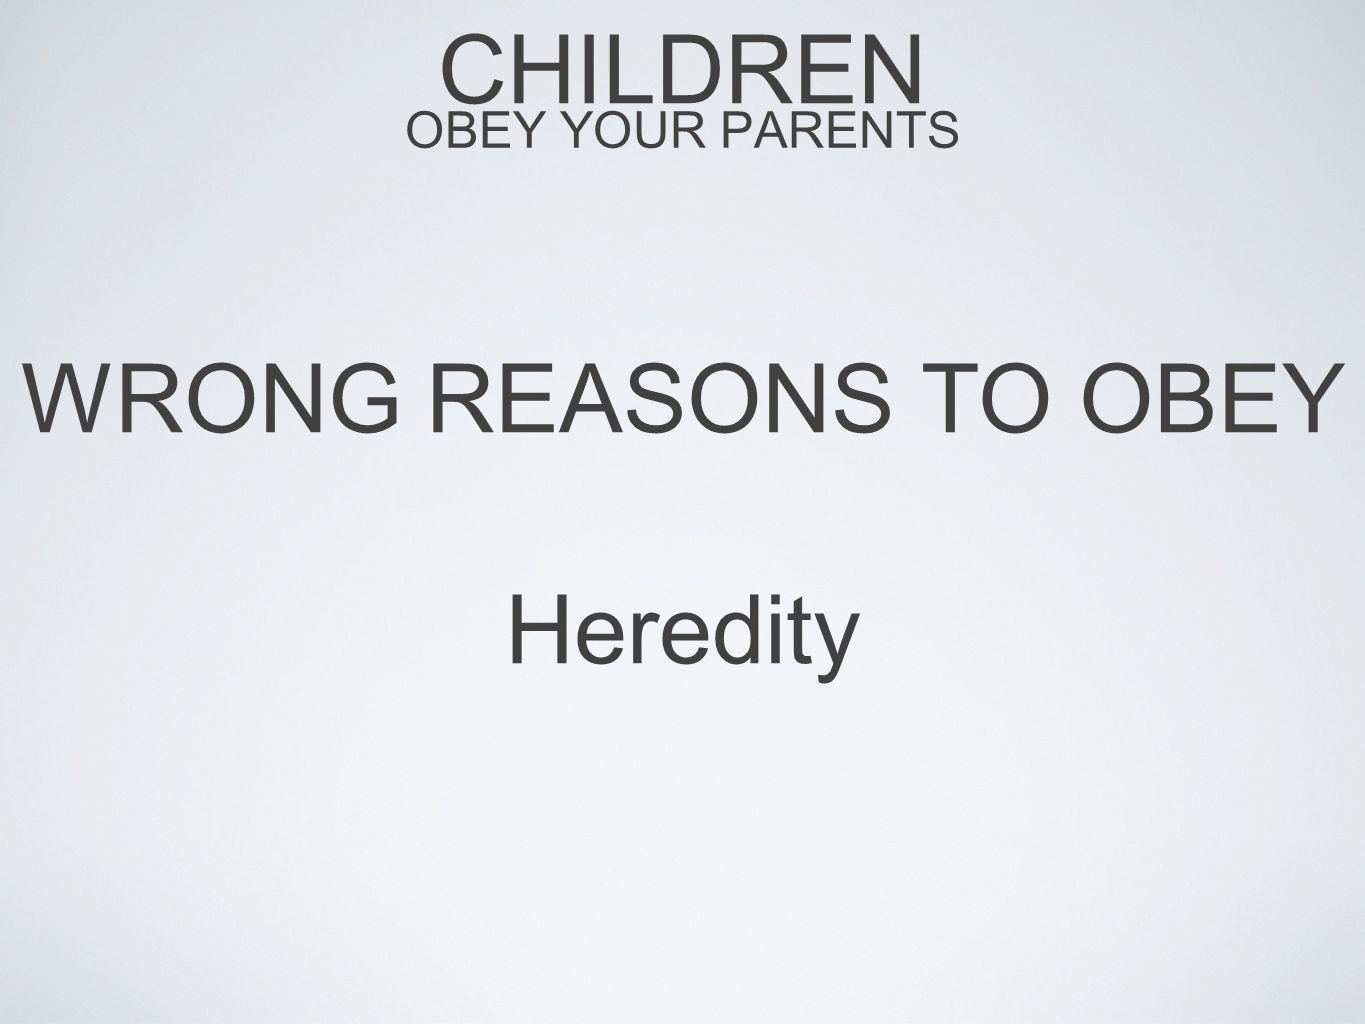 CHILDREN OBEY YOUR PARENTS WRONG REASONS TO OBEY Heredity